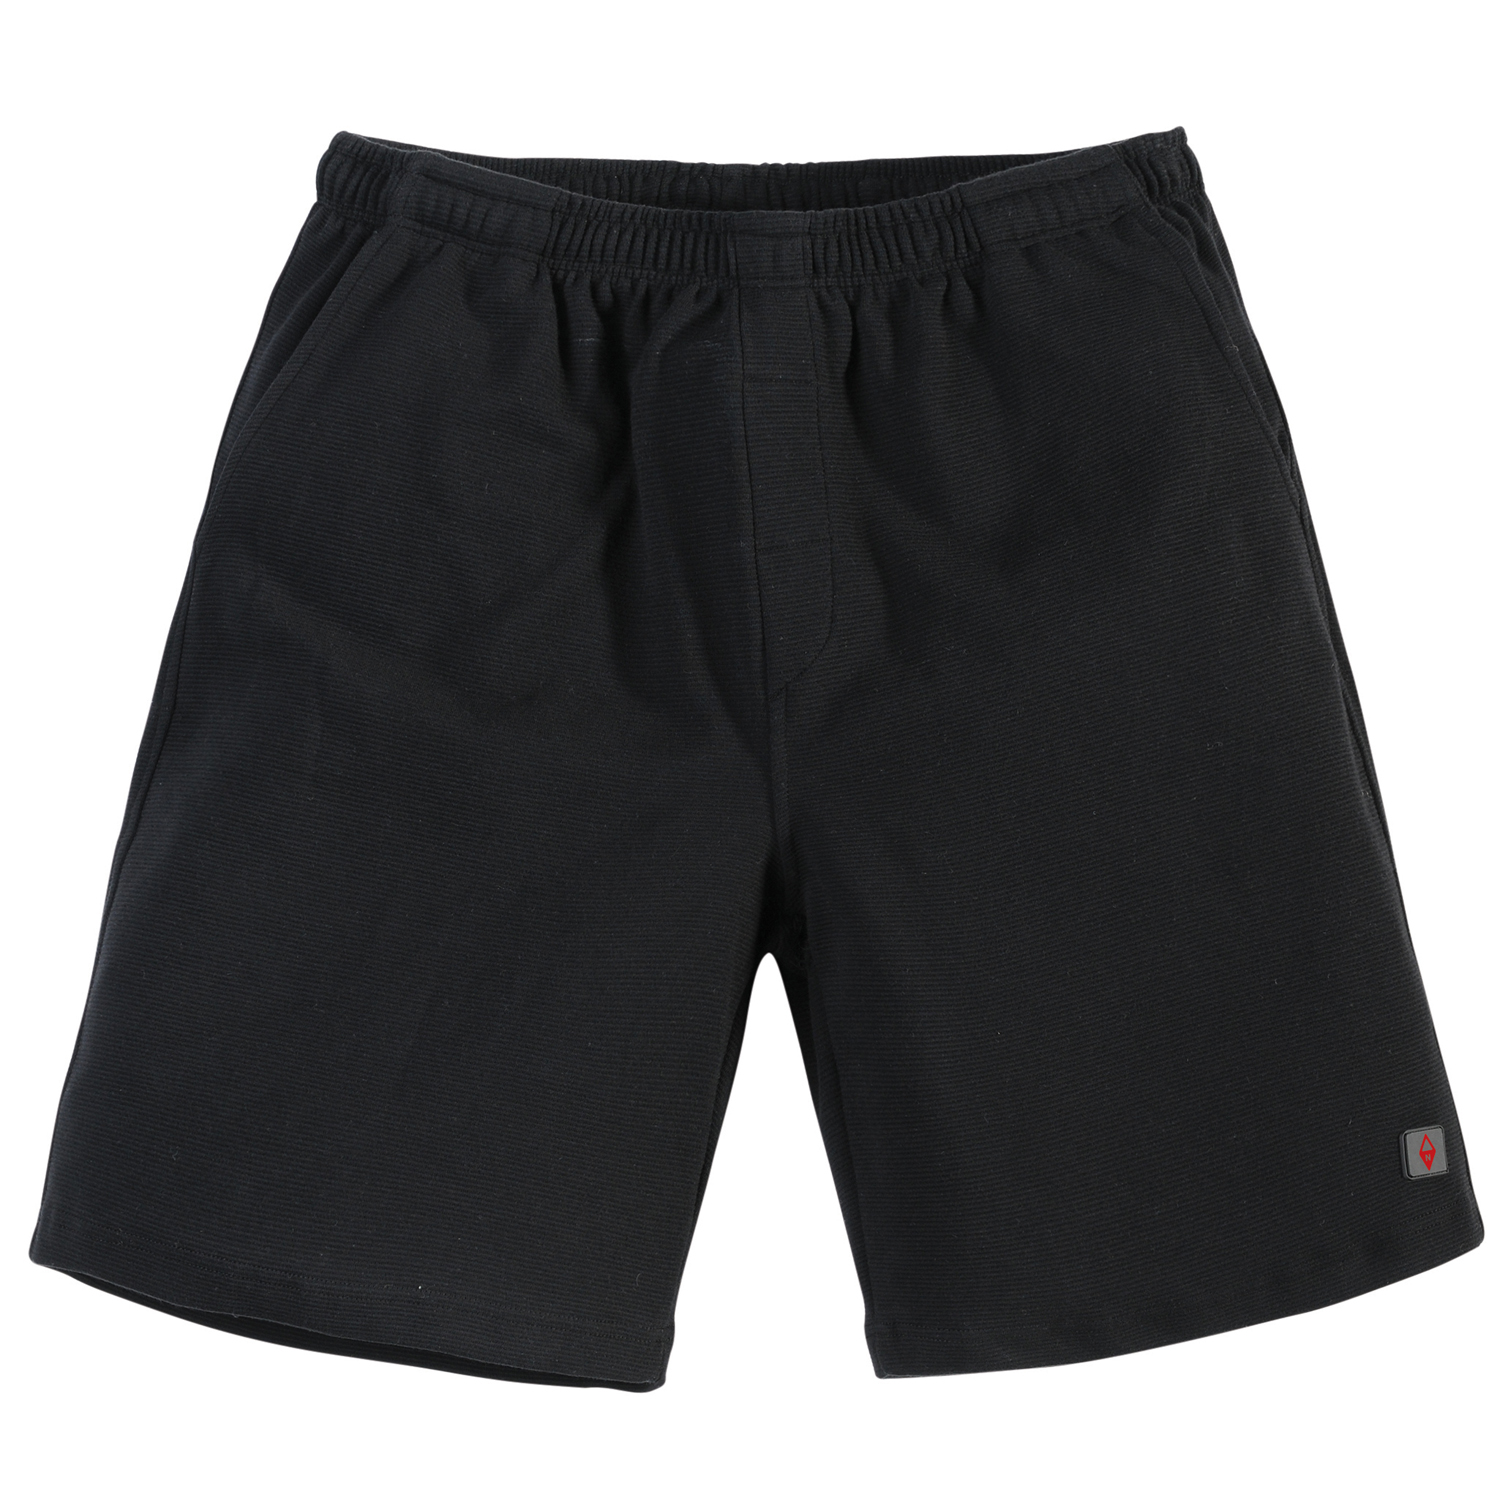 Detail Image to Black sweat shorts for men by North 56°4 in oversizes up to 8XL